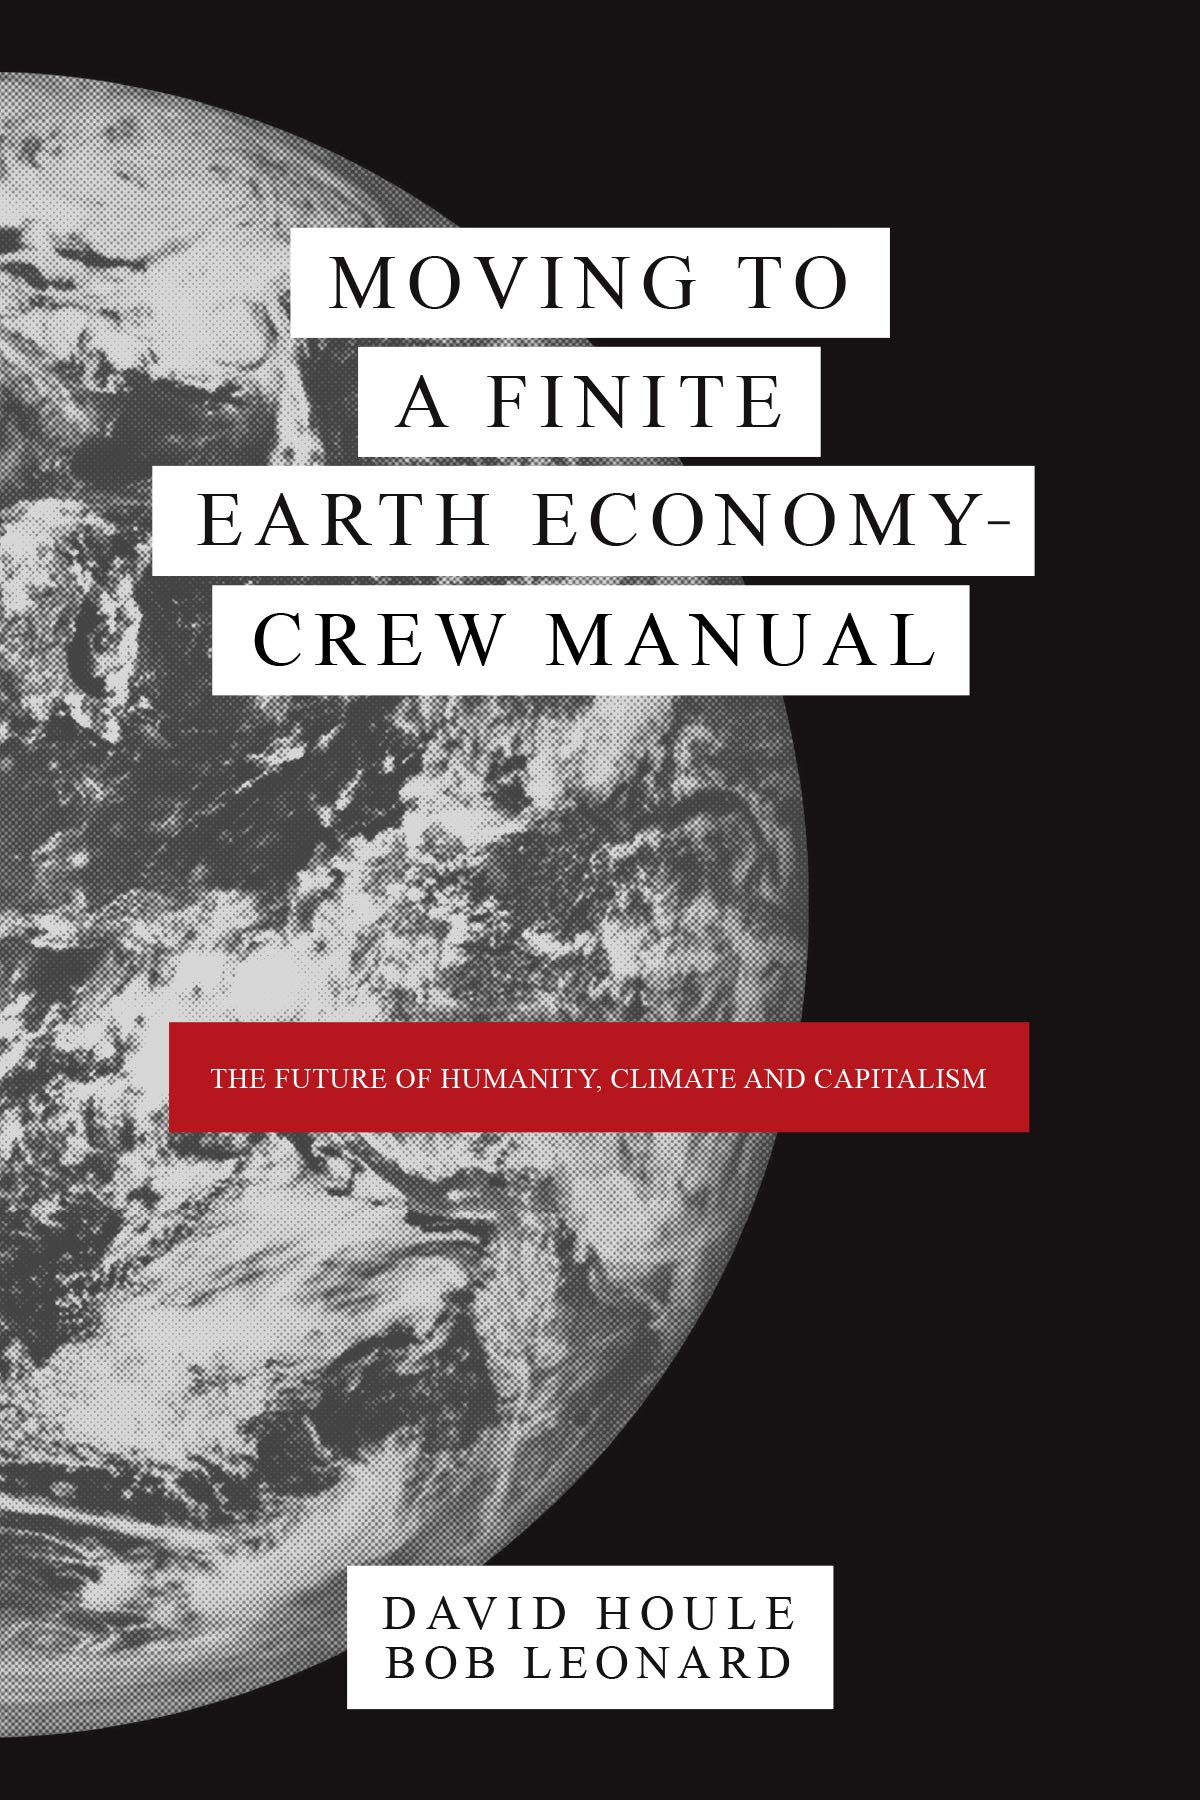 Moving to a Finite Earth Economy - Crew Manual: The Complete Trilogy